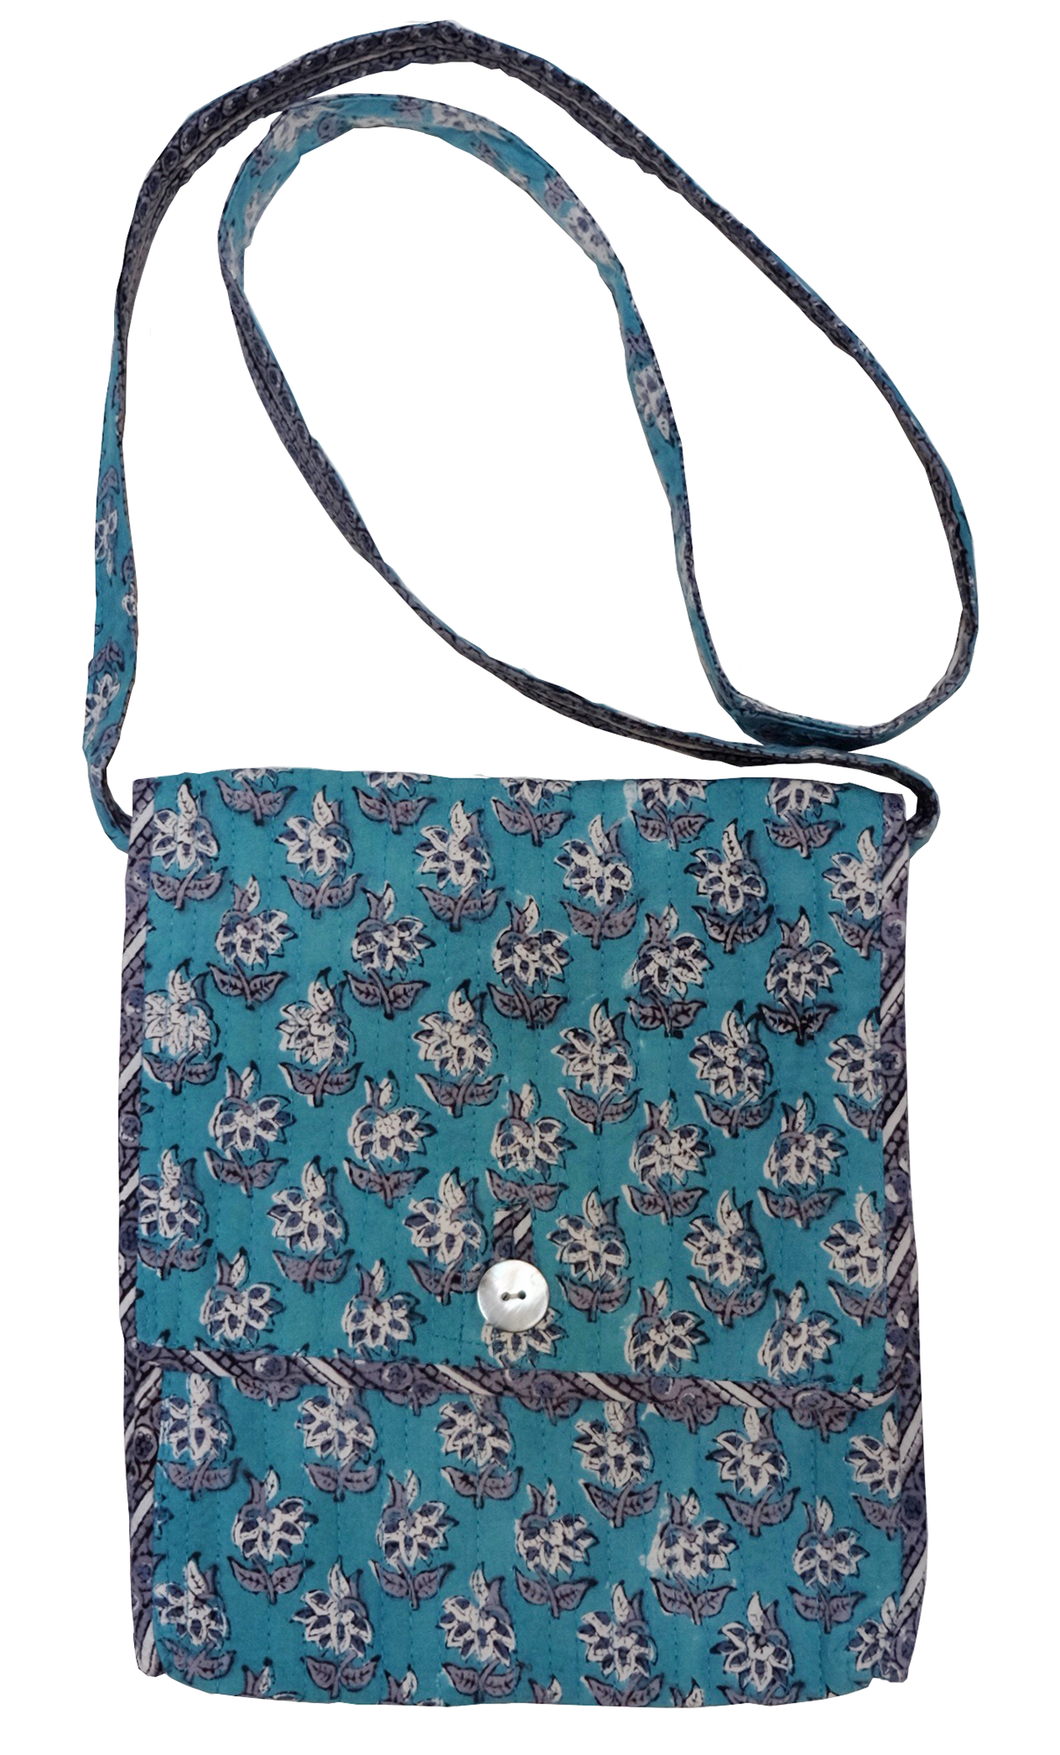 Cotton ipad bag - Starflower Booti - Anokhi